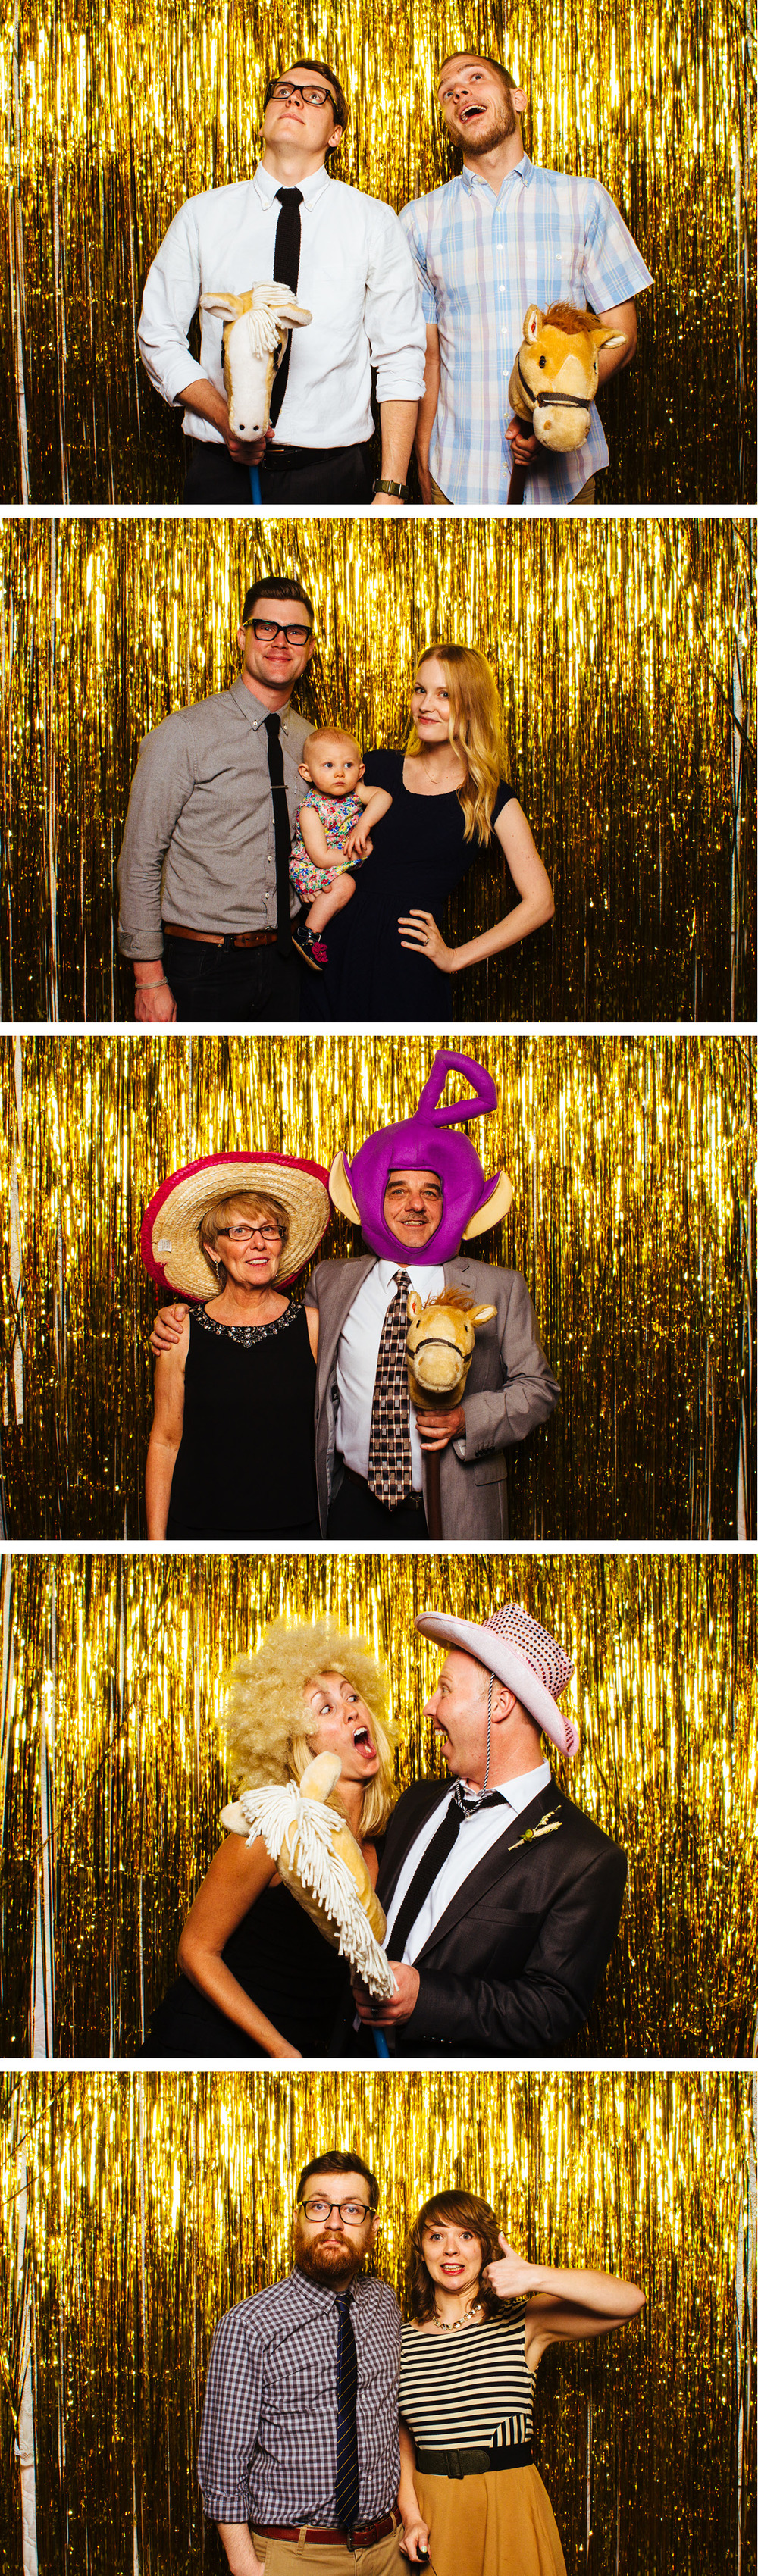 CK-Photo-Nashville-Wedding-Photographer-Photobooth-DL4.jpg